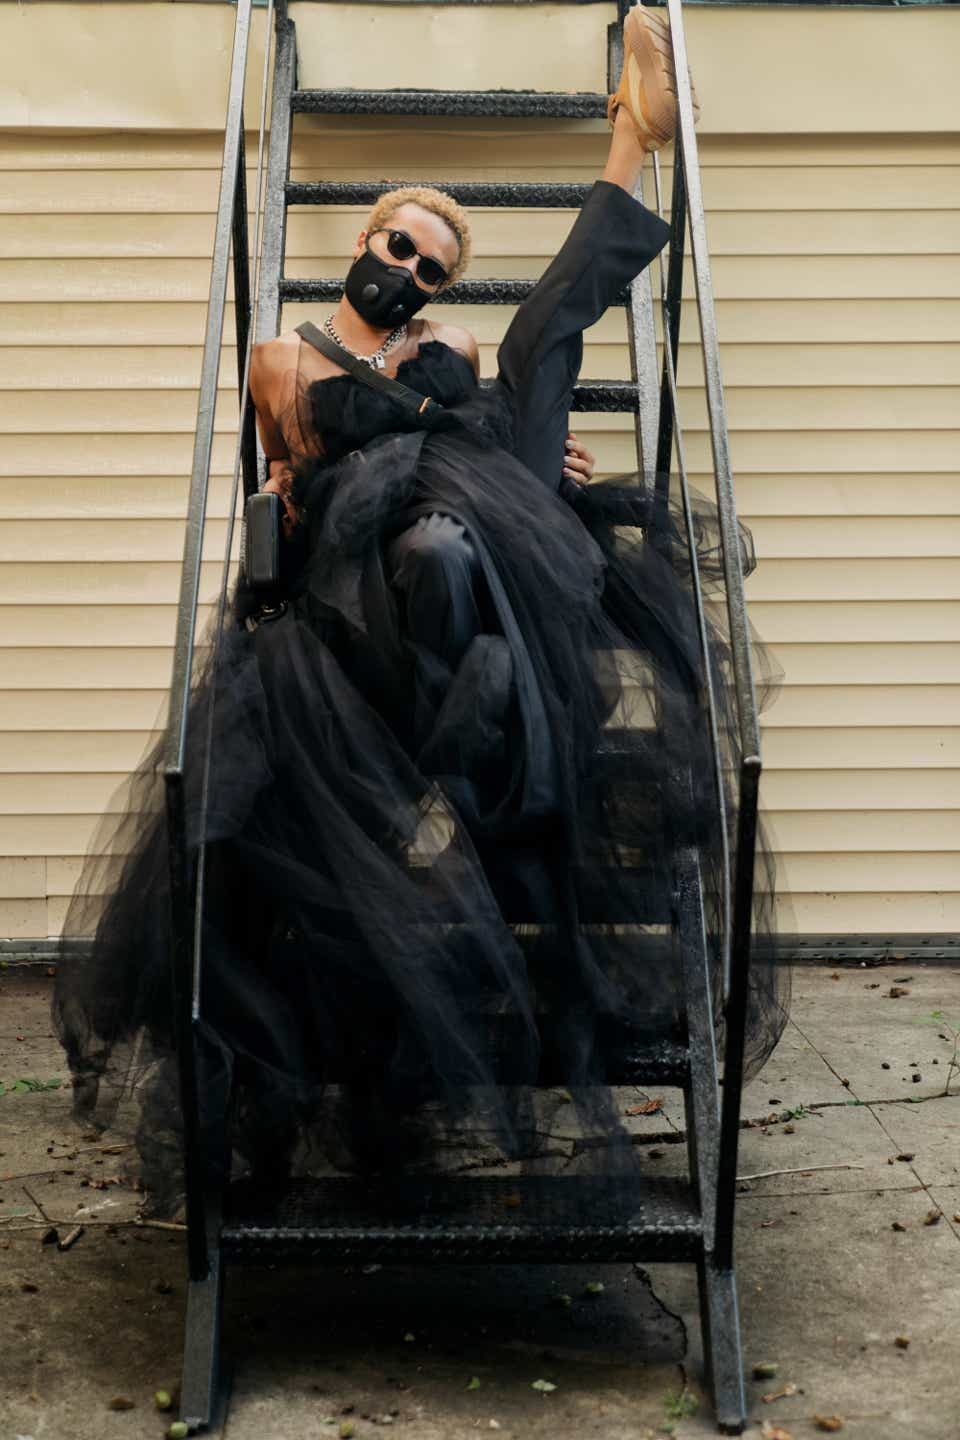 Owen is wearing a black mask and black sunglasses while posing with a leg up on a staircase. Owen is wearing a black, tulle dress with black tuxedo pants.